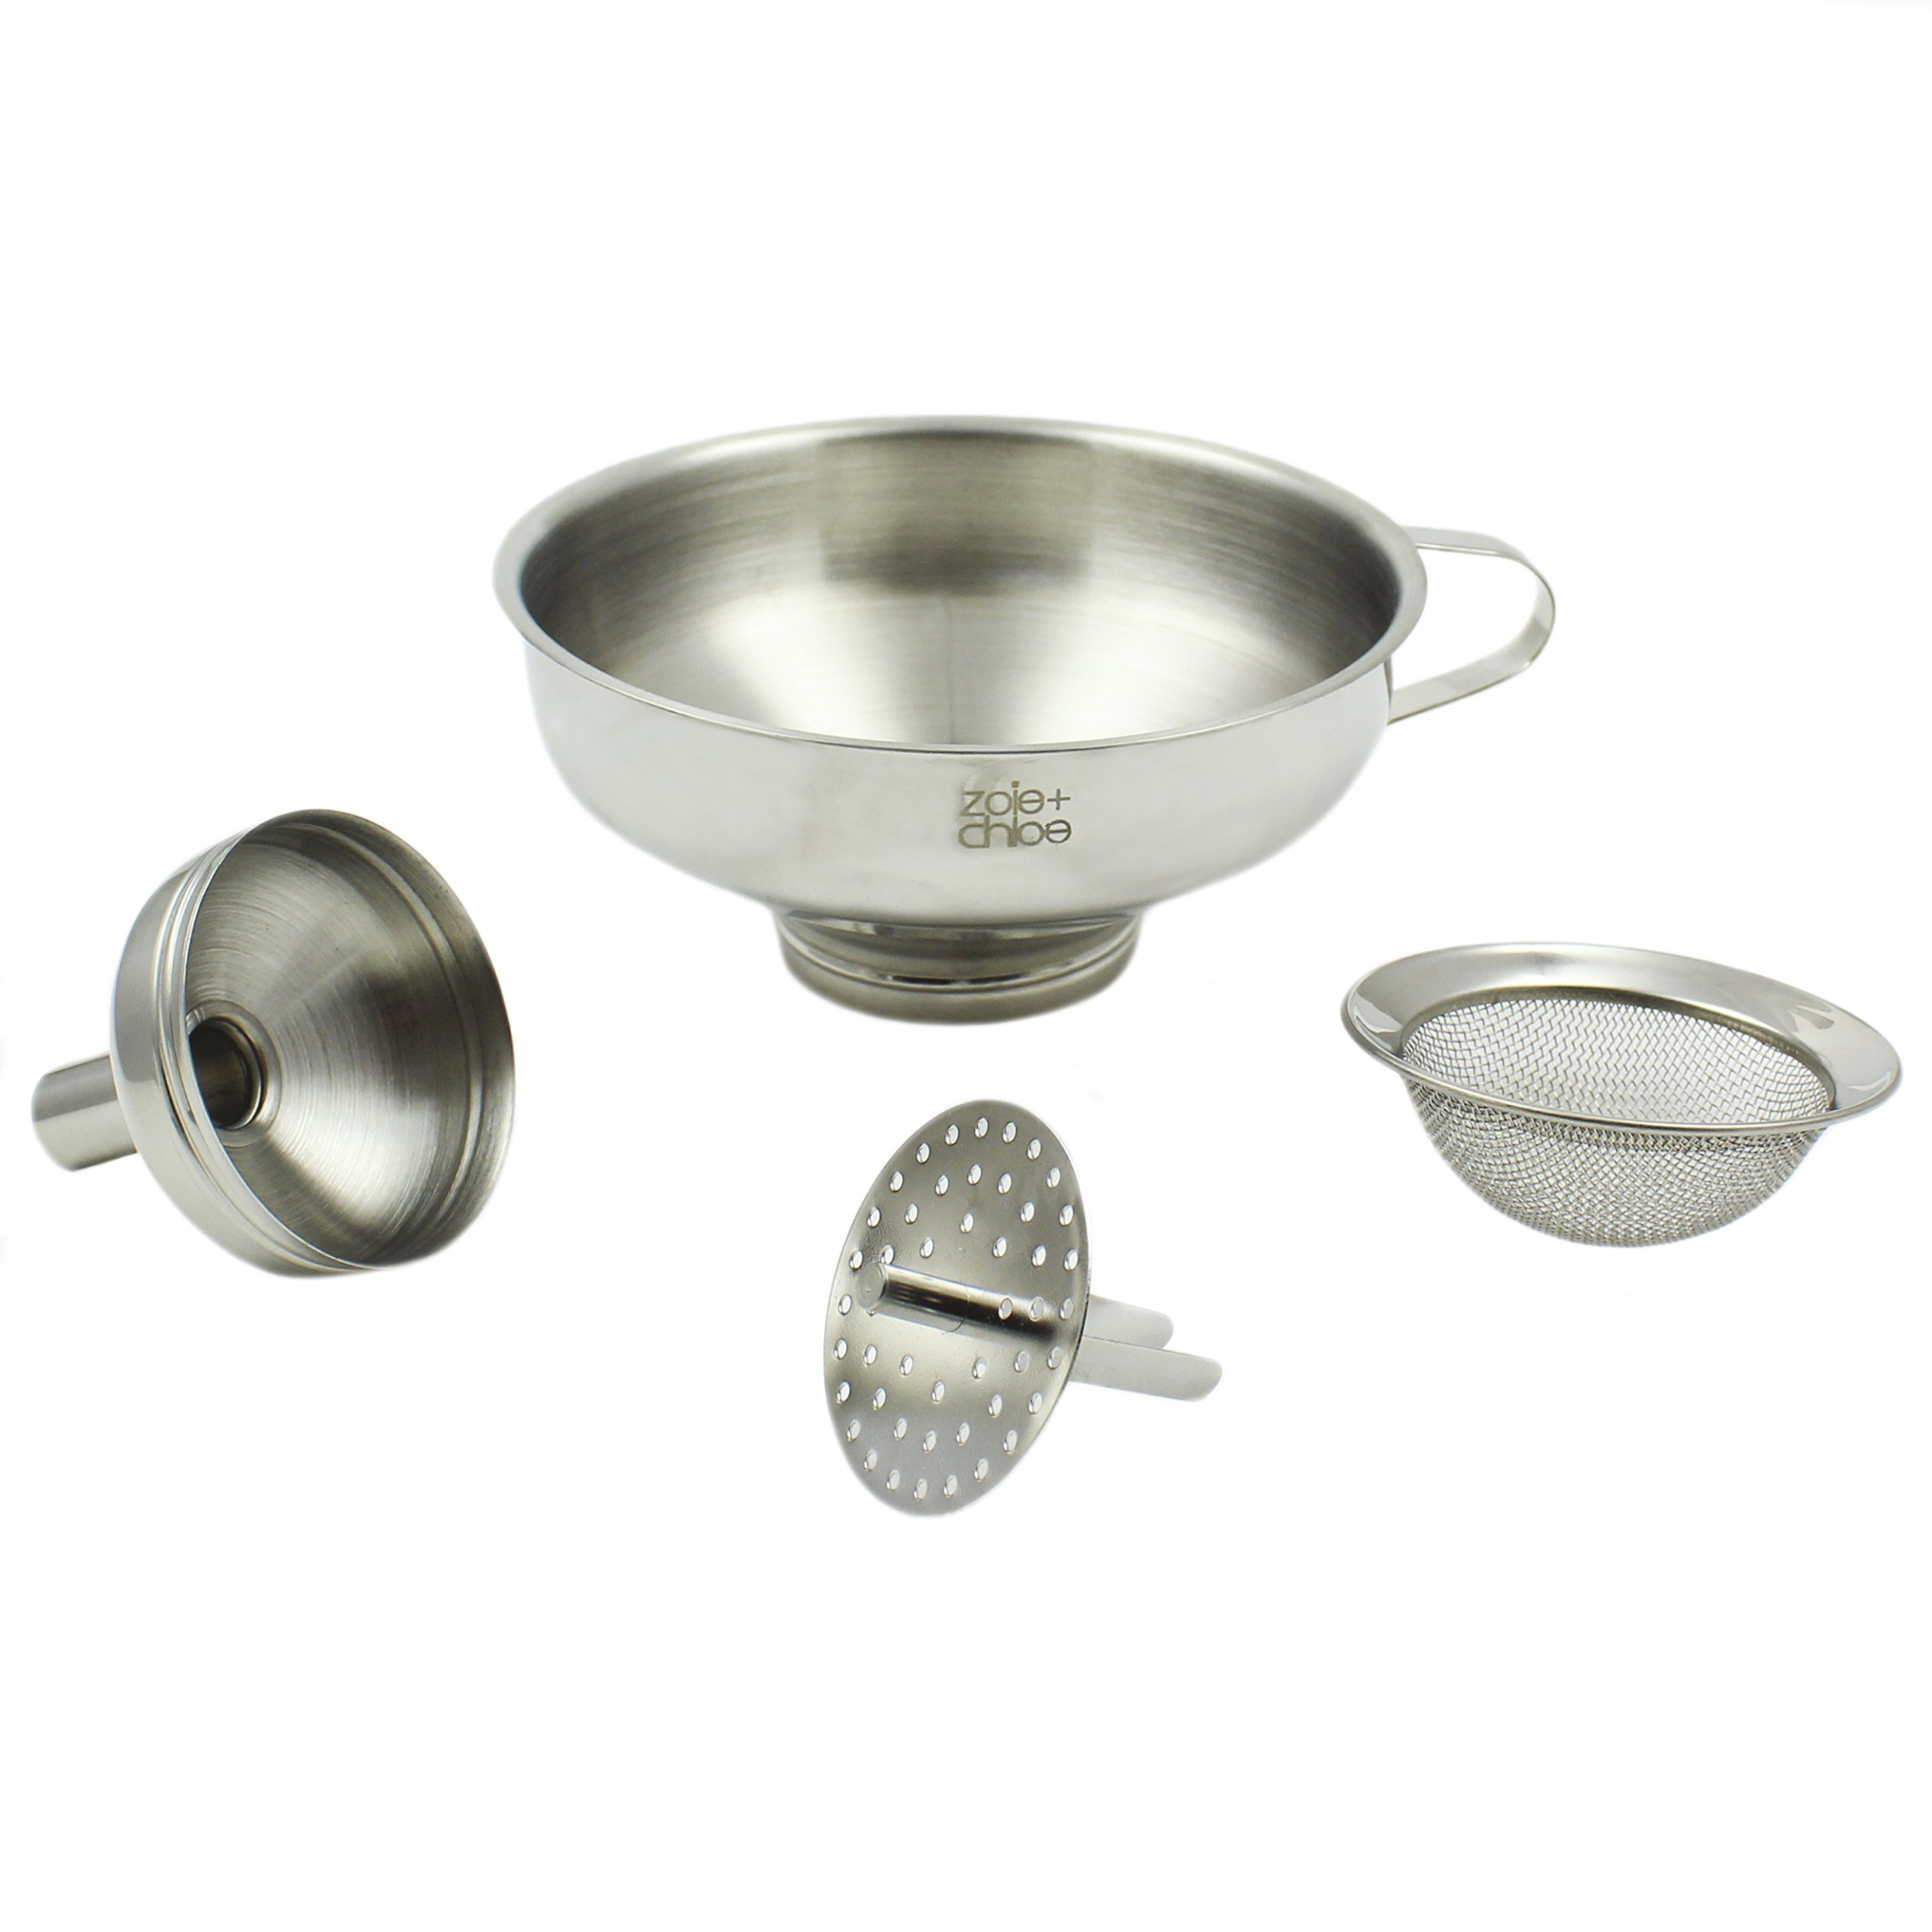 Zoie + Chloe 3-in-1 Stainless Steel Funnel Set - Wide Mouth with Mesh Basket - Narrow Mouth with Strainer by Zoie + Chloe